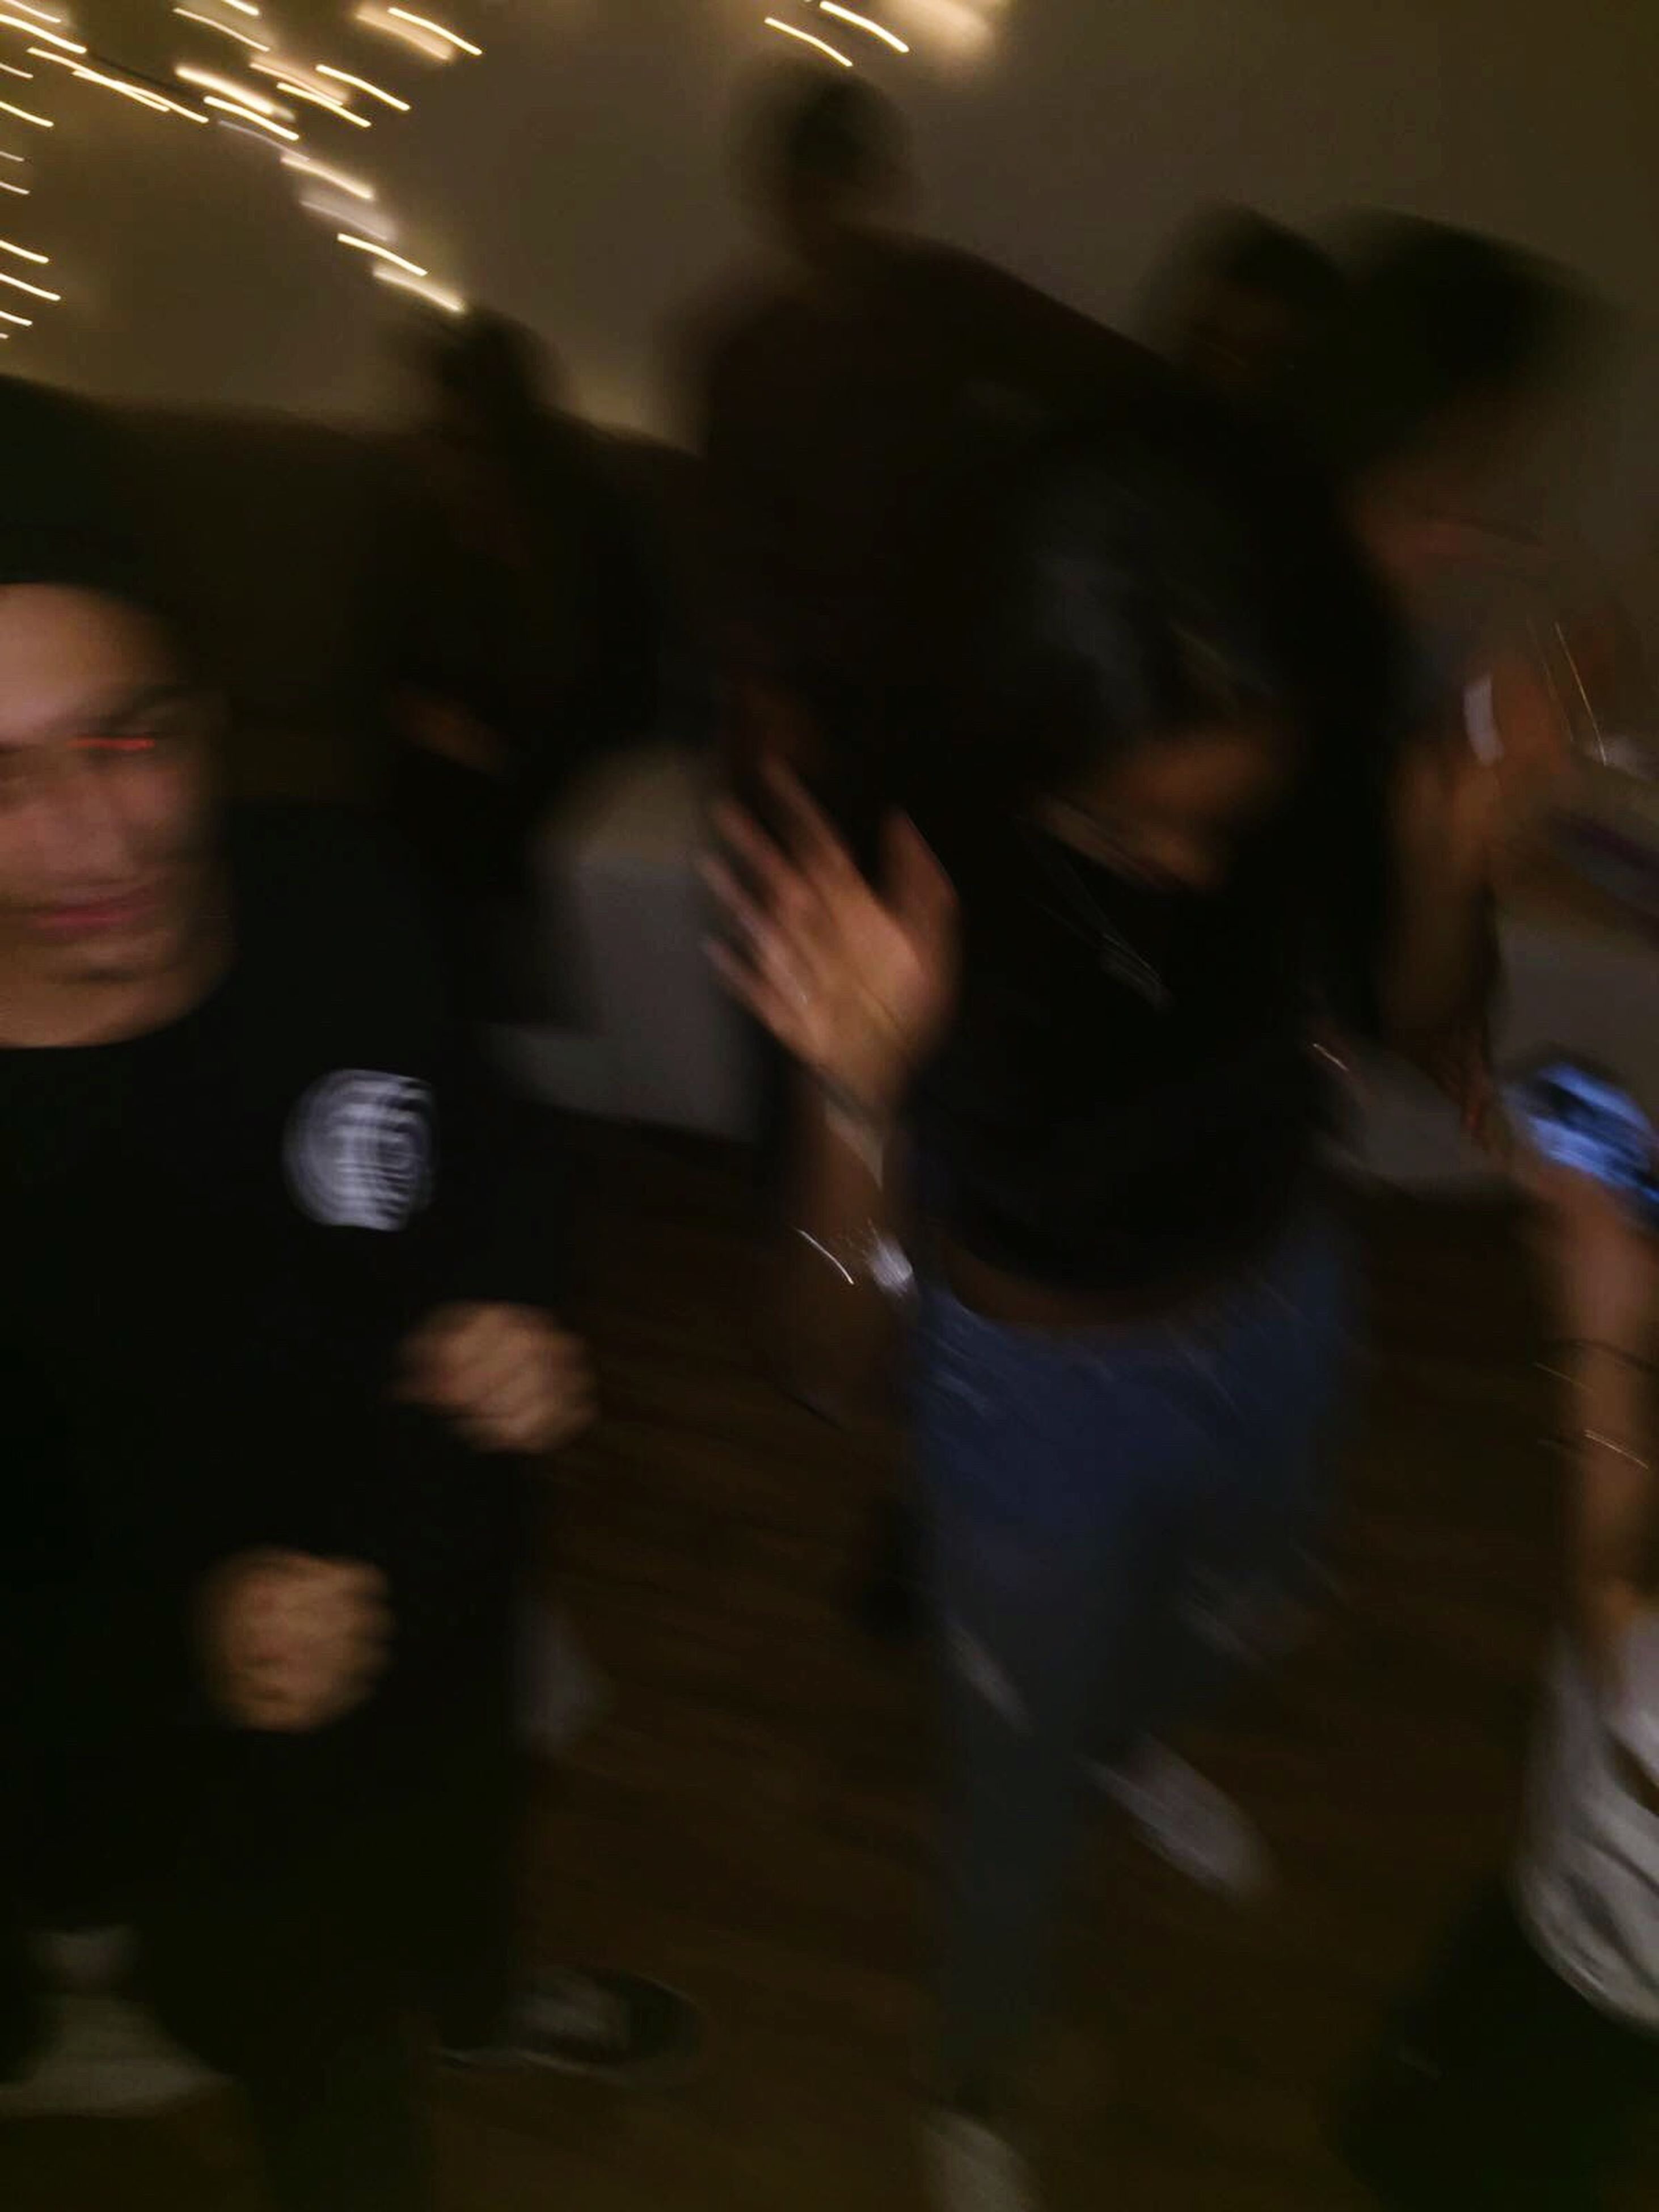 blurred motion, lifestyles, one person, real people, motion, adults only, women, indoors, urgency, leisure activity, adult, people, men, only women, close-up, day